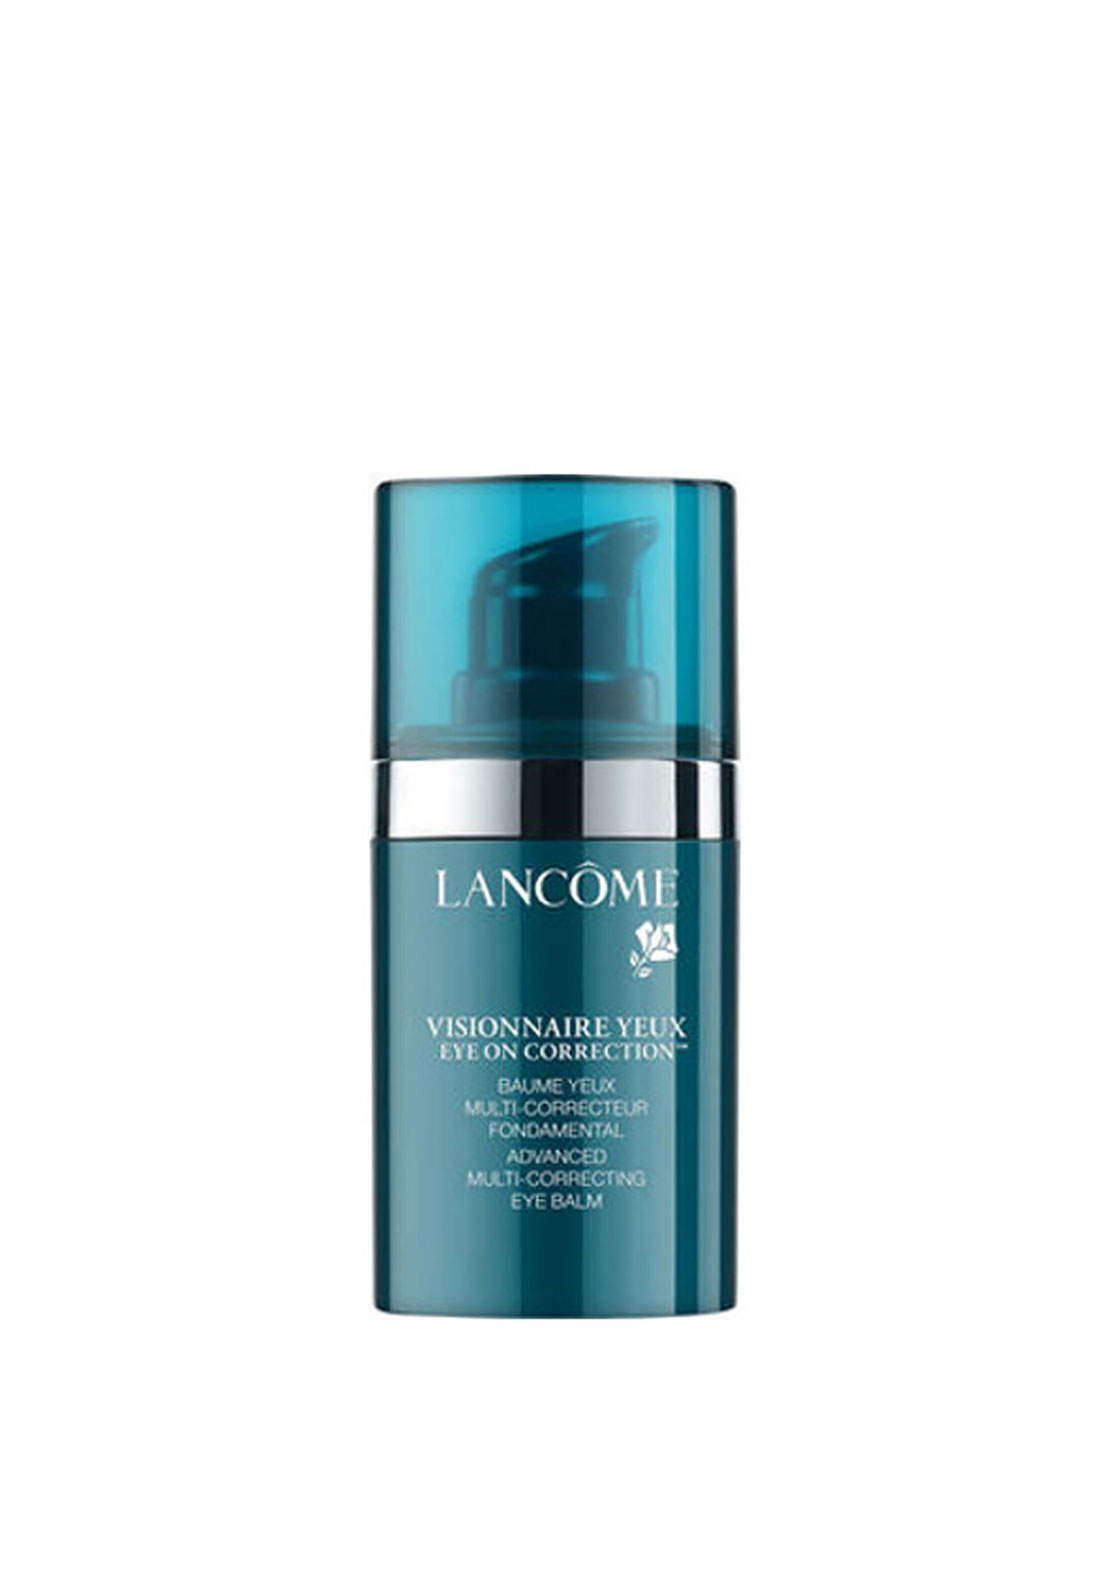 Lancome Visionnaire Yeux Advanced Eye Balm, 15ml